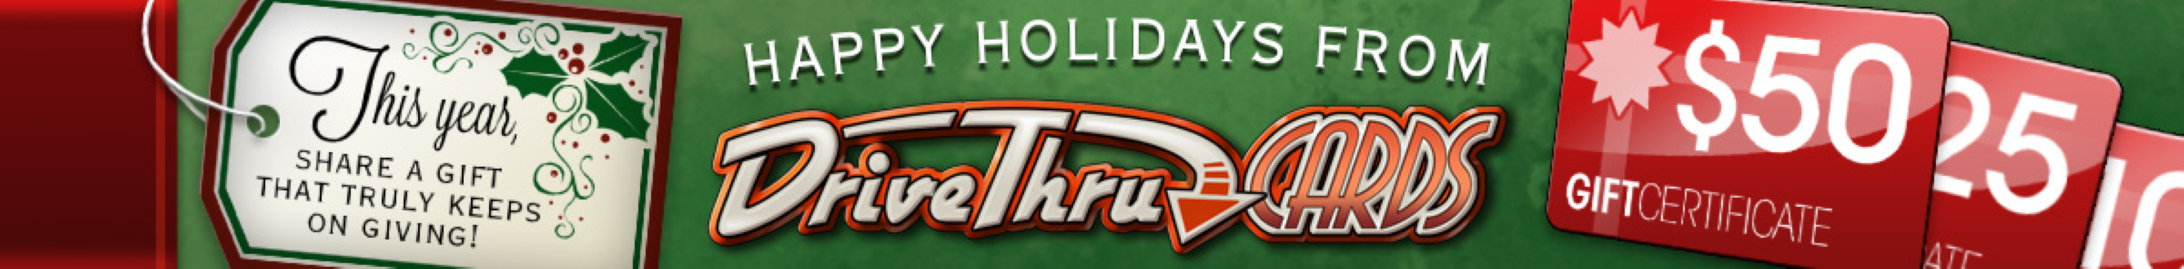 Happy holidays! Gift certificates are available @ DriveThruCards.com